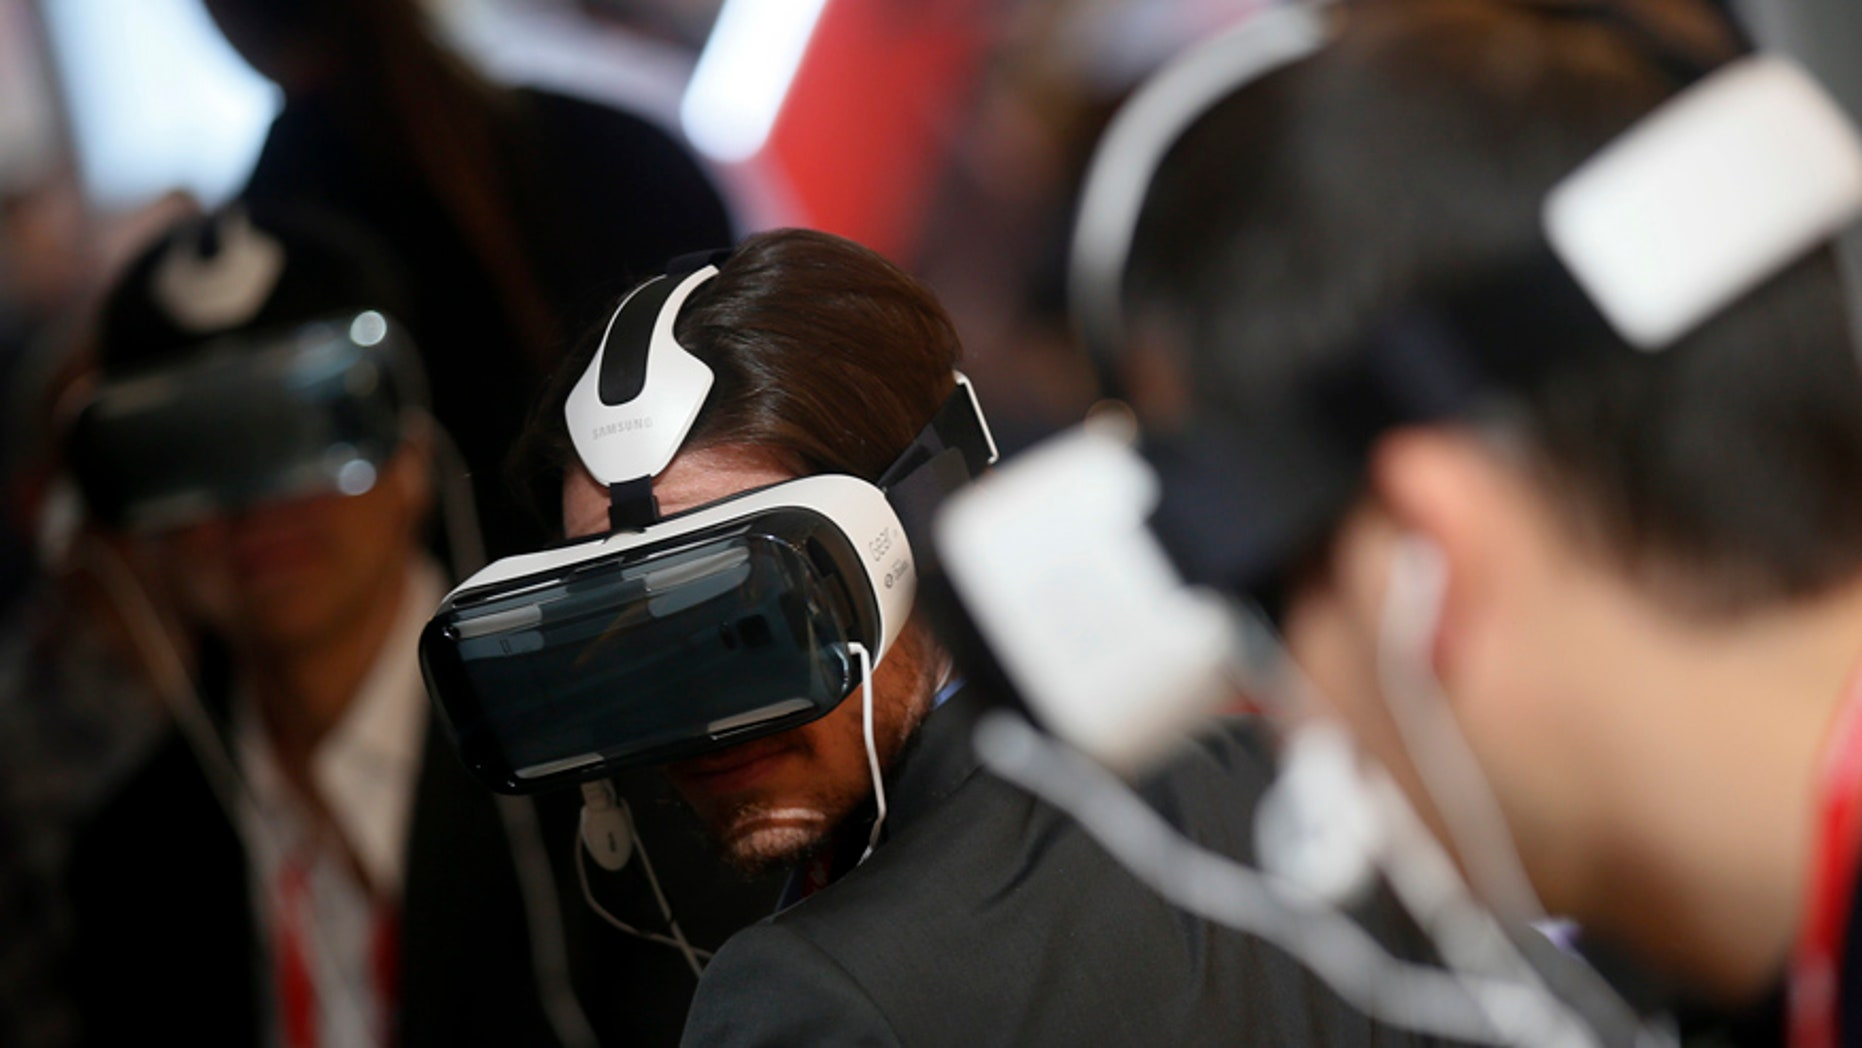 File photo. Visitors check Samsung's new virtual reality (VR) headset called the Gear VR Innovation Edition during the Mobile World Congress in Barcelona March 3, 2015.